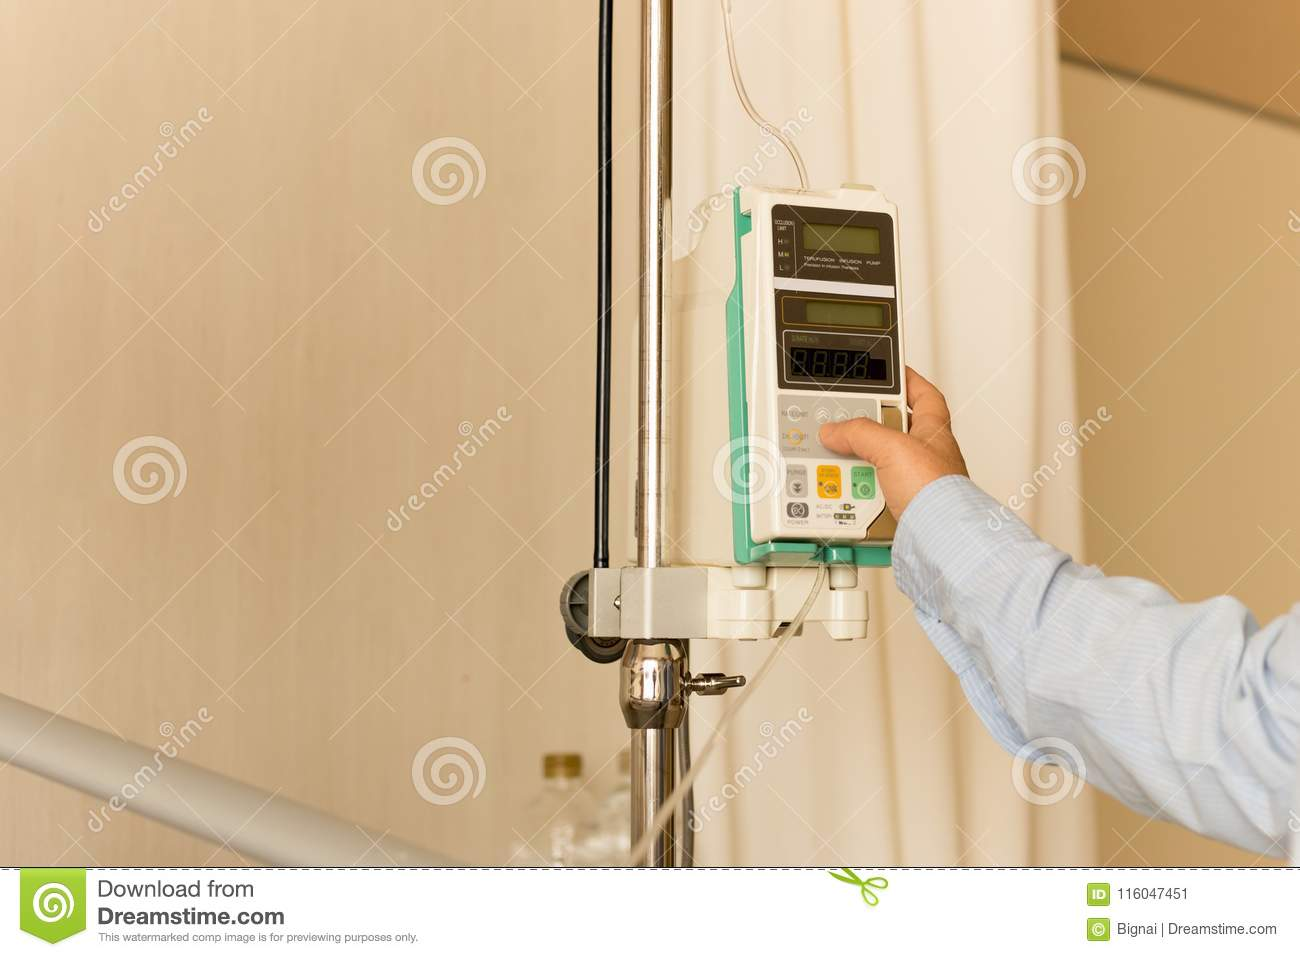 Doctor `s Hand Control IV On Infusion Pump Intravenous IV Drip I Stock Image - Image of fingers. hand: 116047451